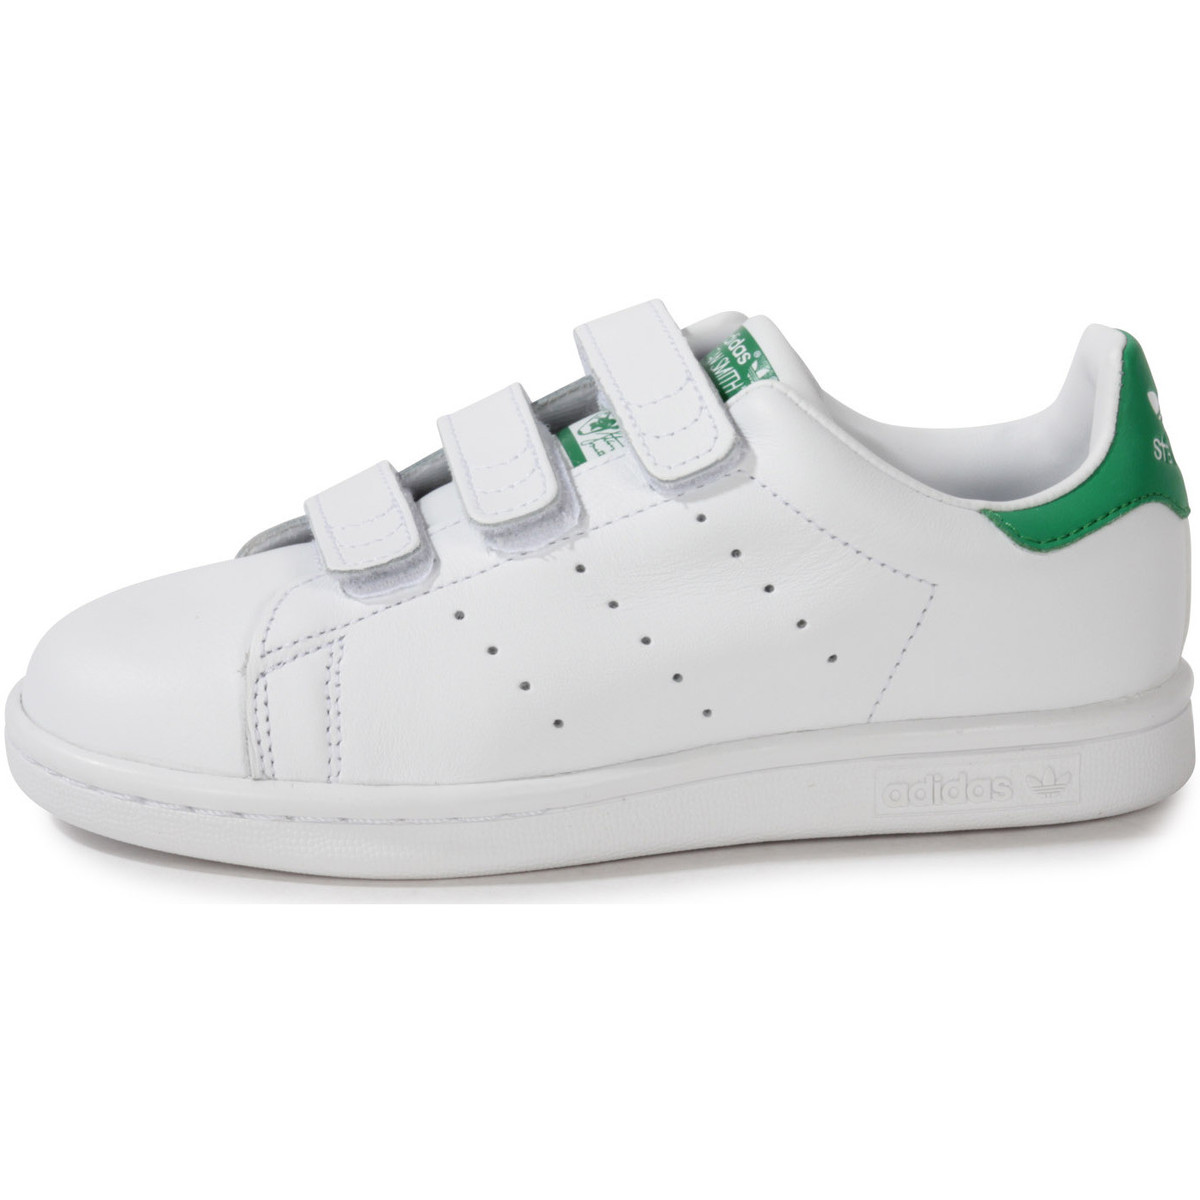 adidas originals stan smith enfant he blanc chaussures baskets basses enfant 56 58. Black Bedroom Furniture Sets. Home Design Ideas